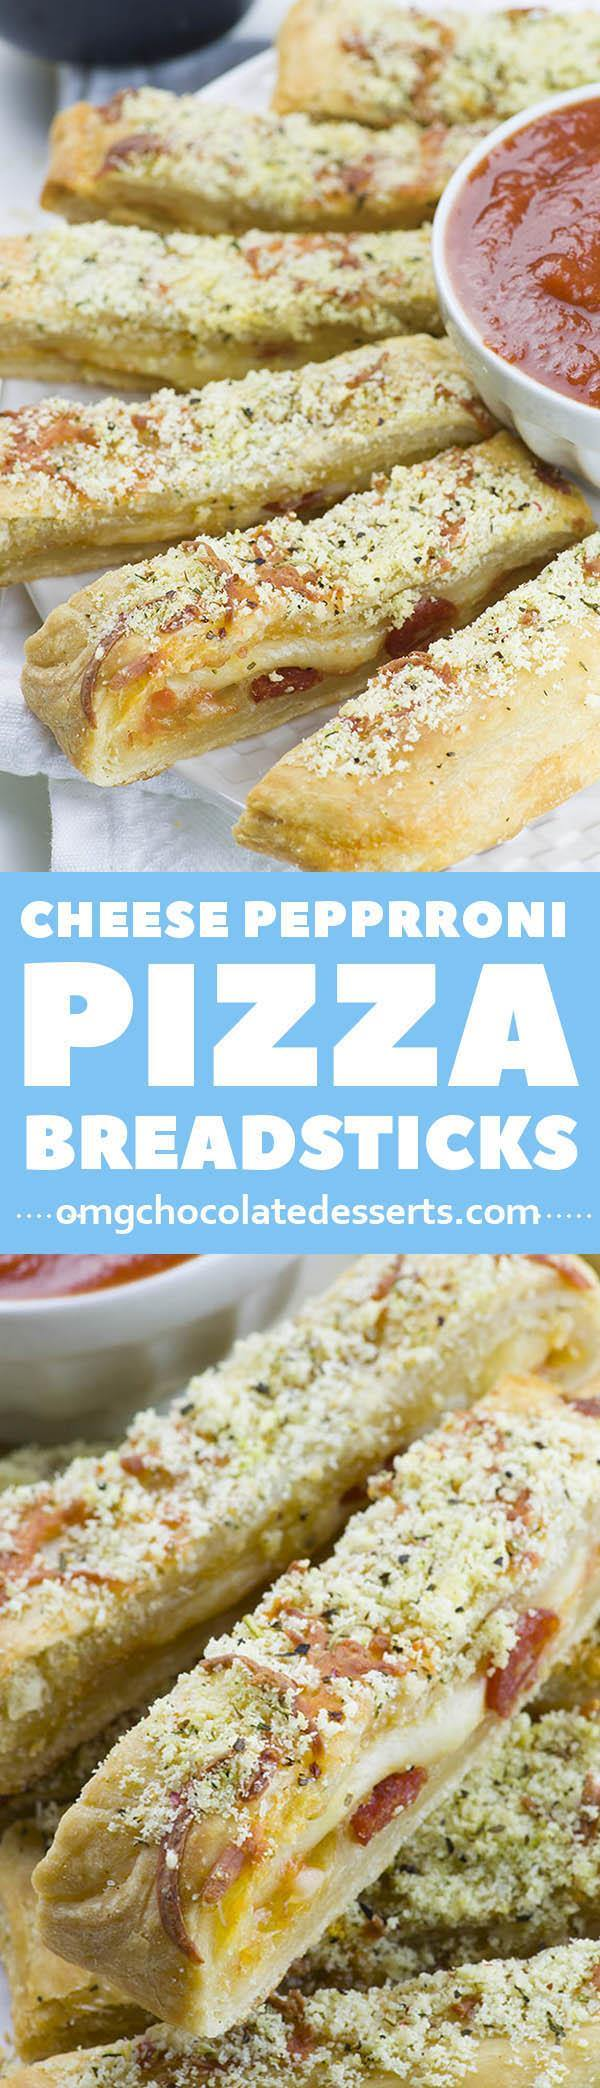 Need a last minute snack for a Game Day? Easy Cheesy Pizza Breadsticks is crowd-pleasing appetizer recipe.